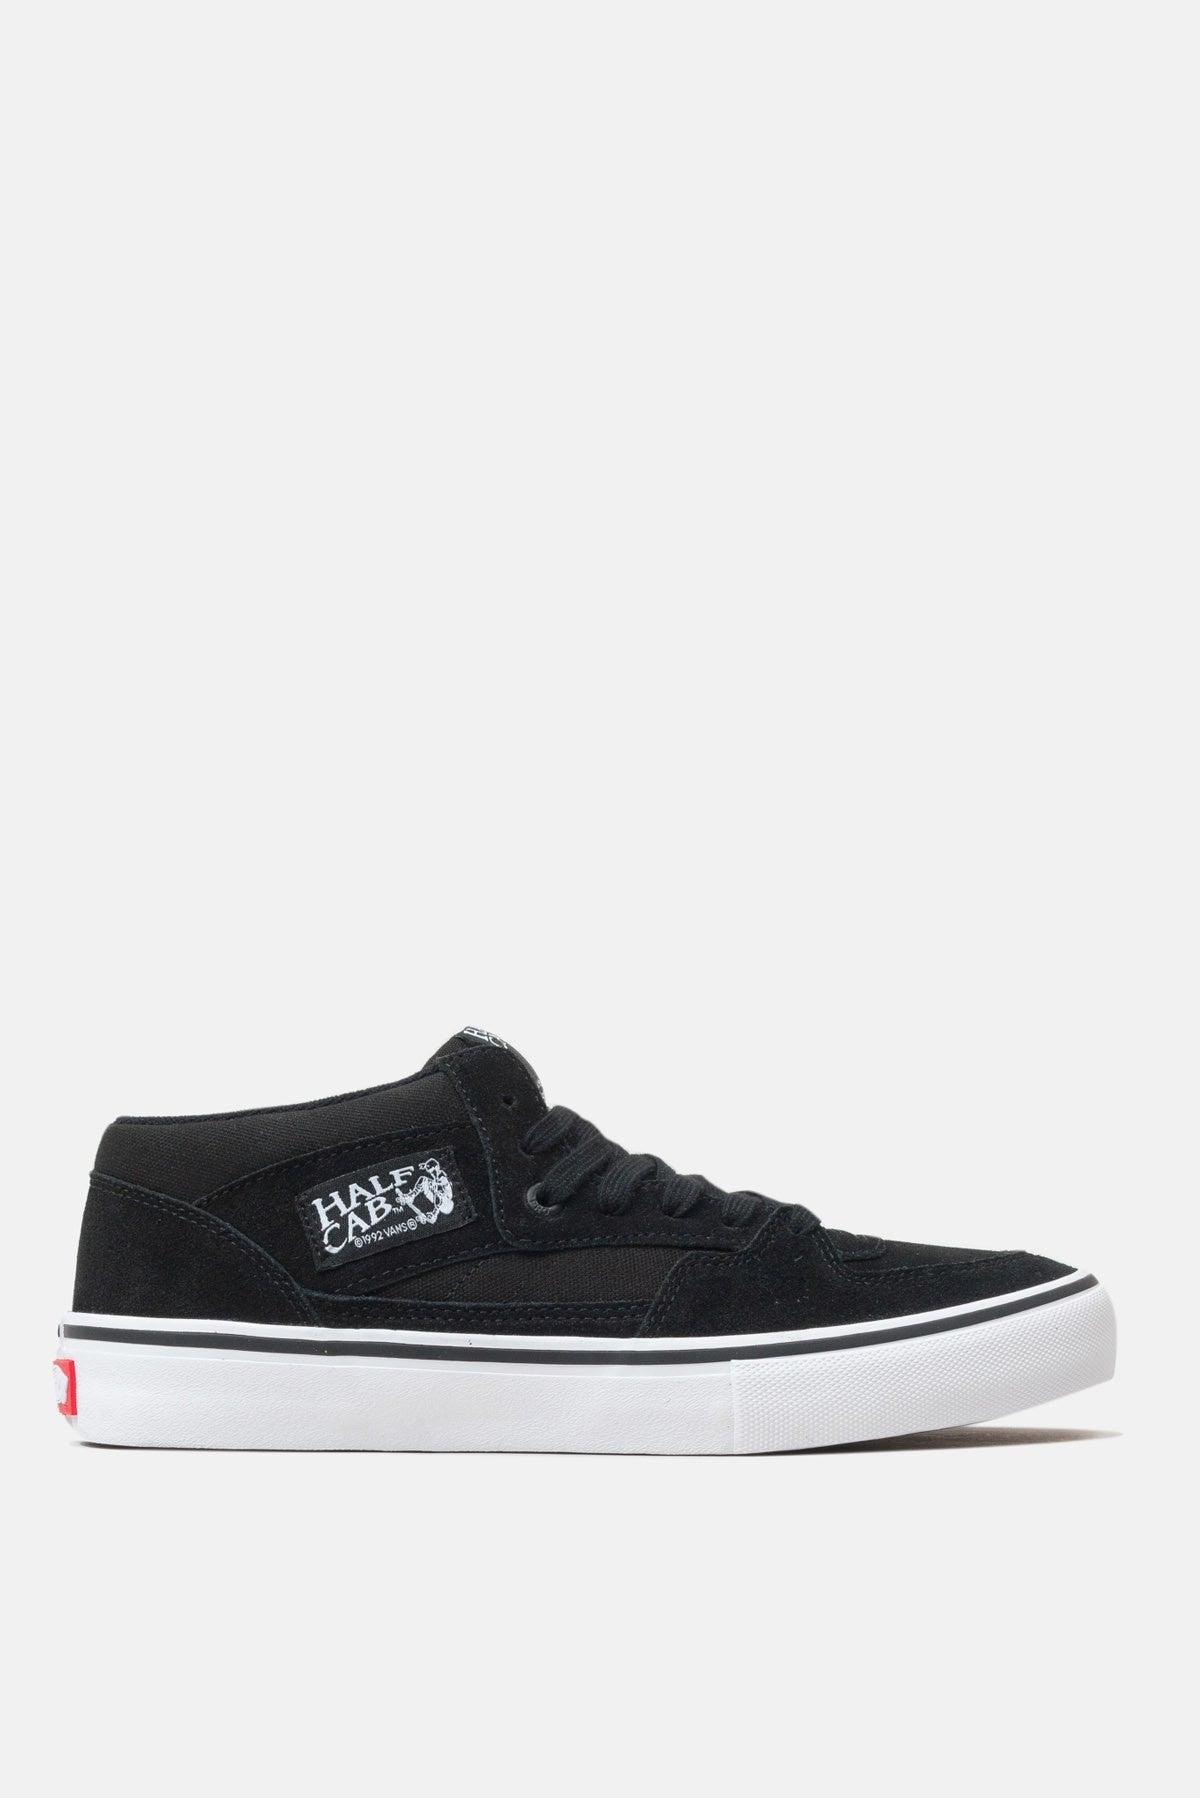 aa99f6ef57 Vans Half Cab Pro Shoes available from Priory